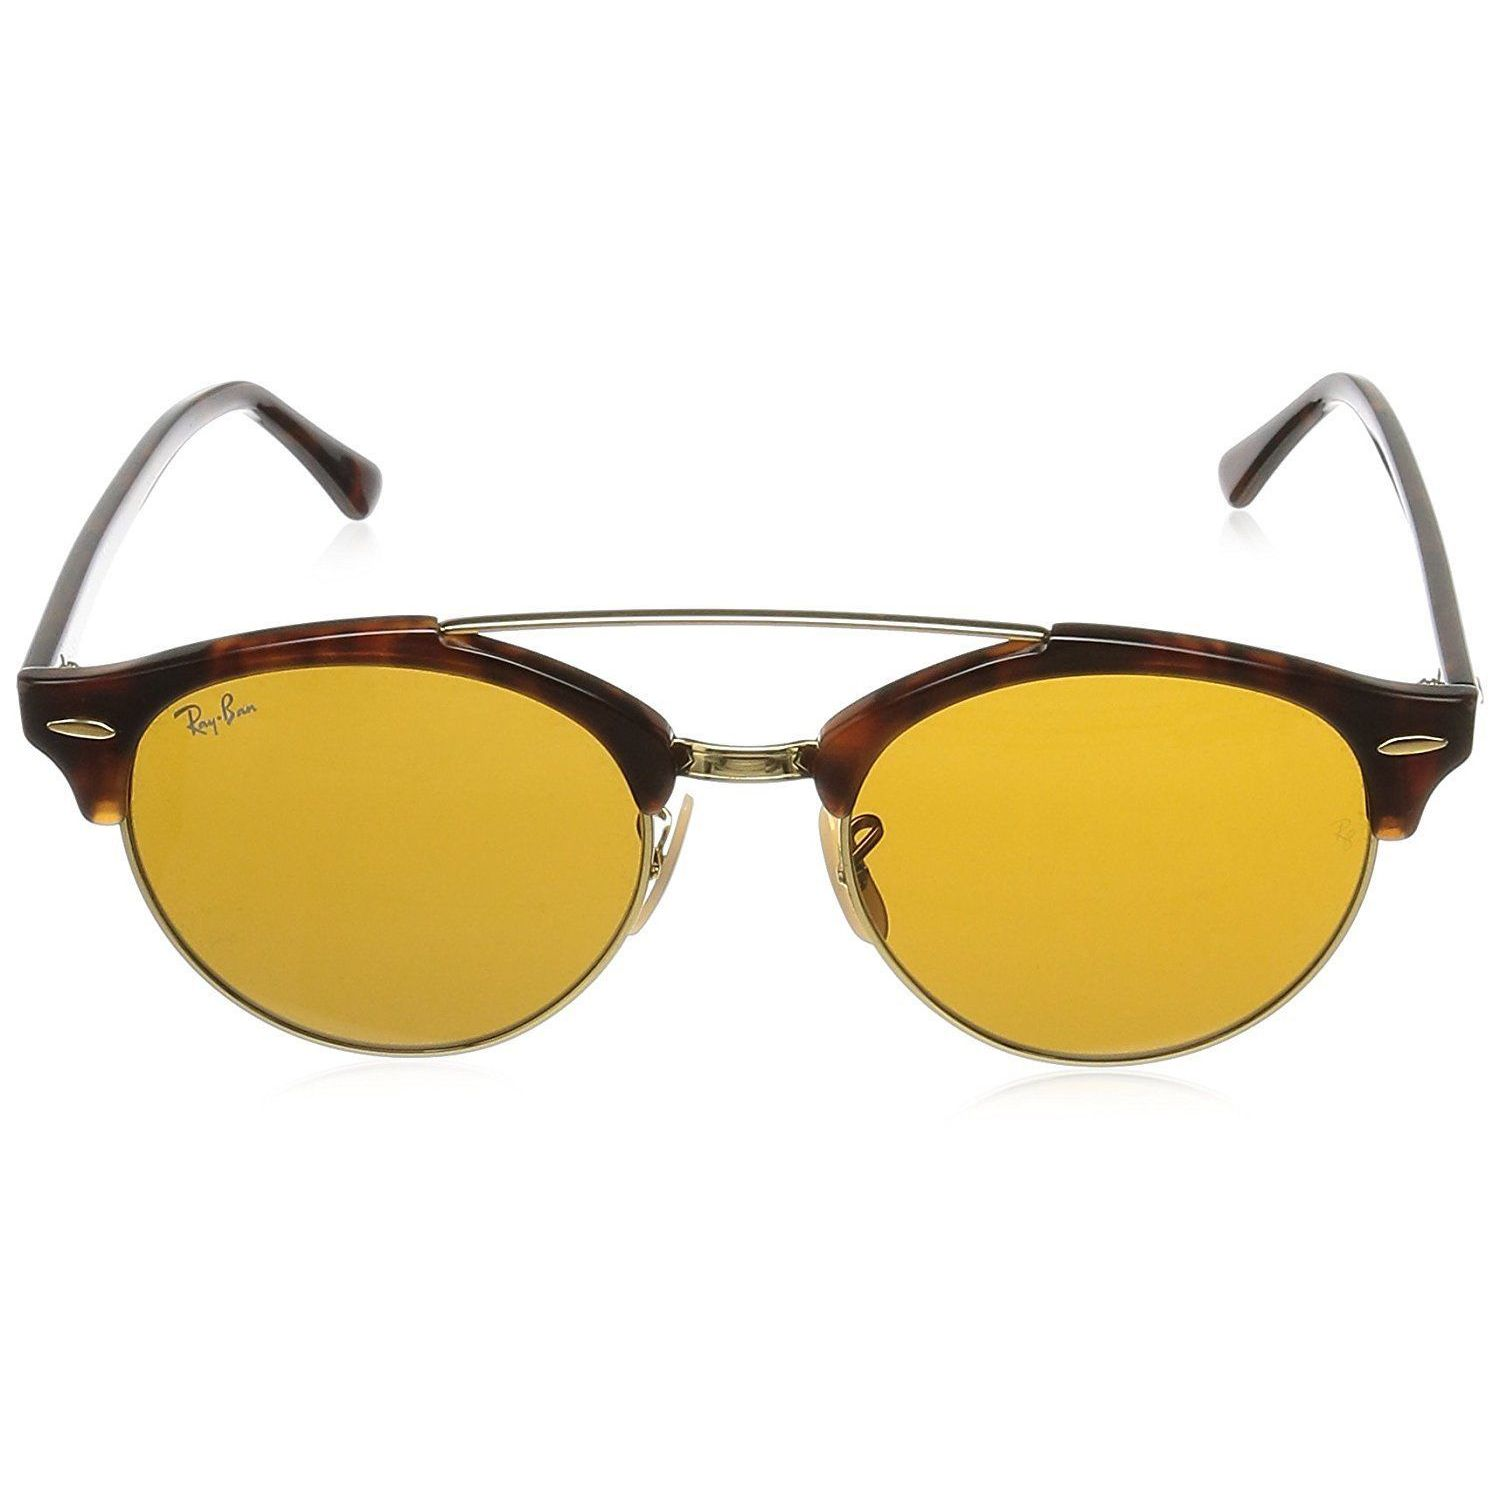 2c1233b229 Shop Ray-Ban Clubround Double Bridge RB4346 Men s Tortoise Frame Brown Lens  Sunglasses - Free Shipping Today - Overstock - 15287220